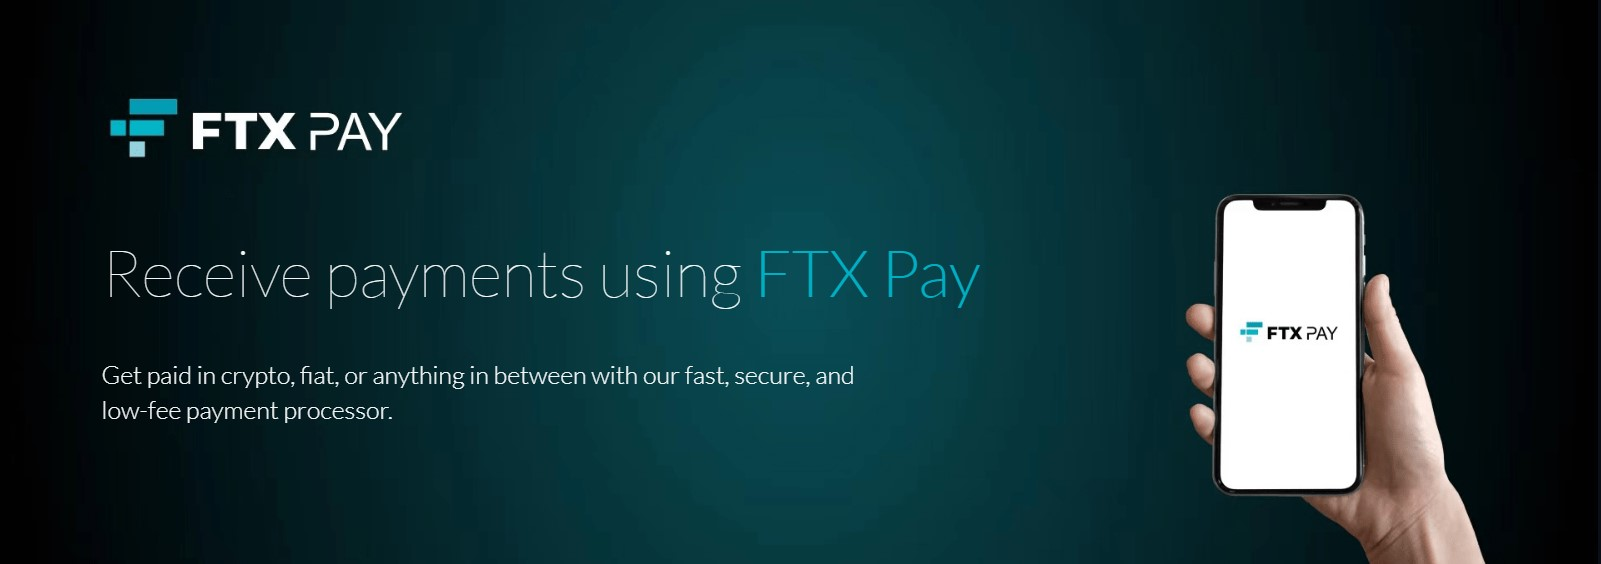 FTX payment method